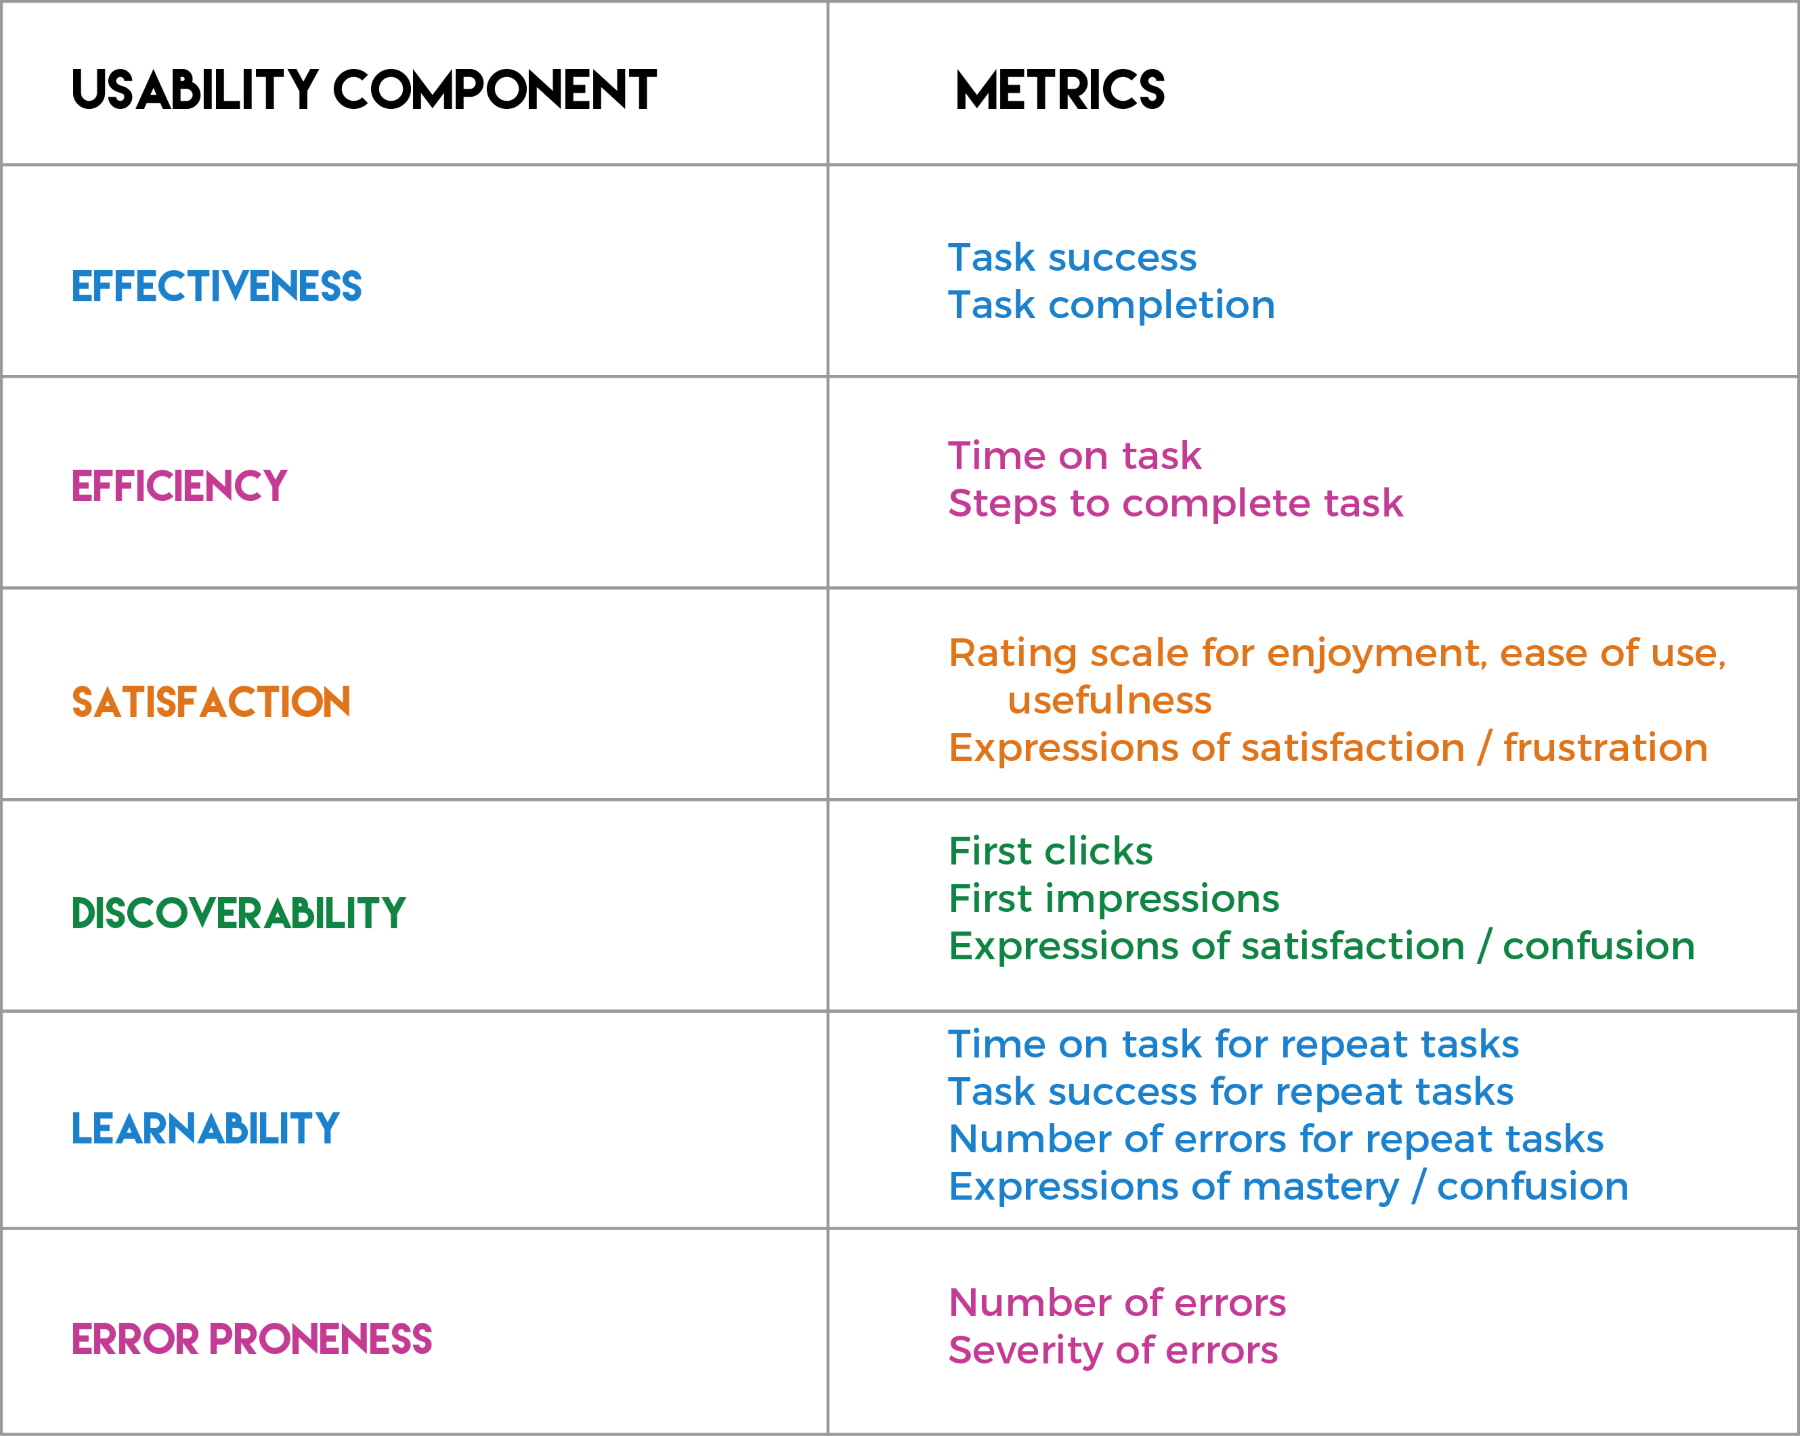 Tasks and metrics to test usability